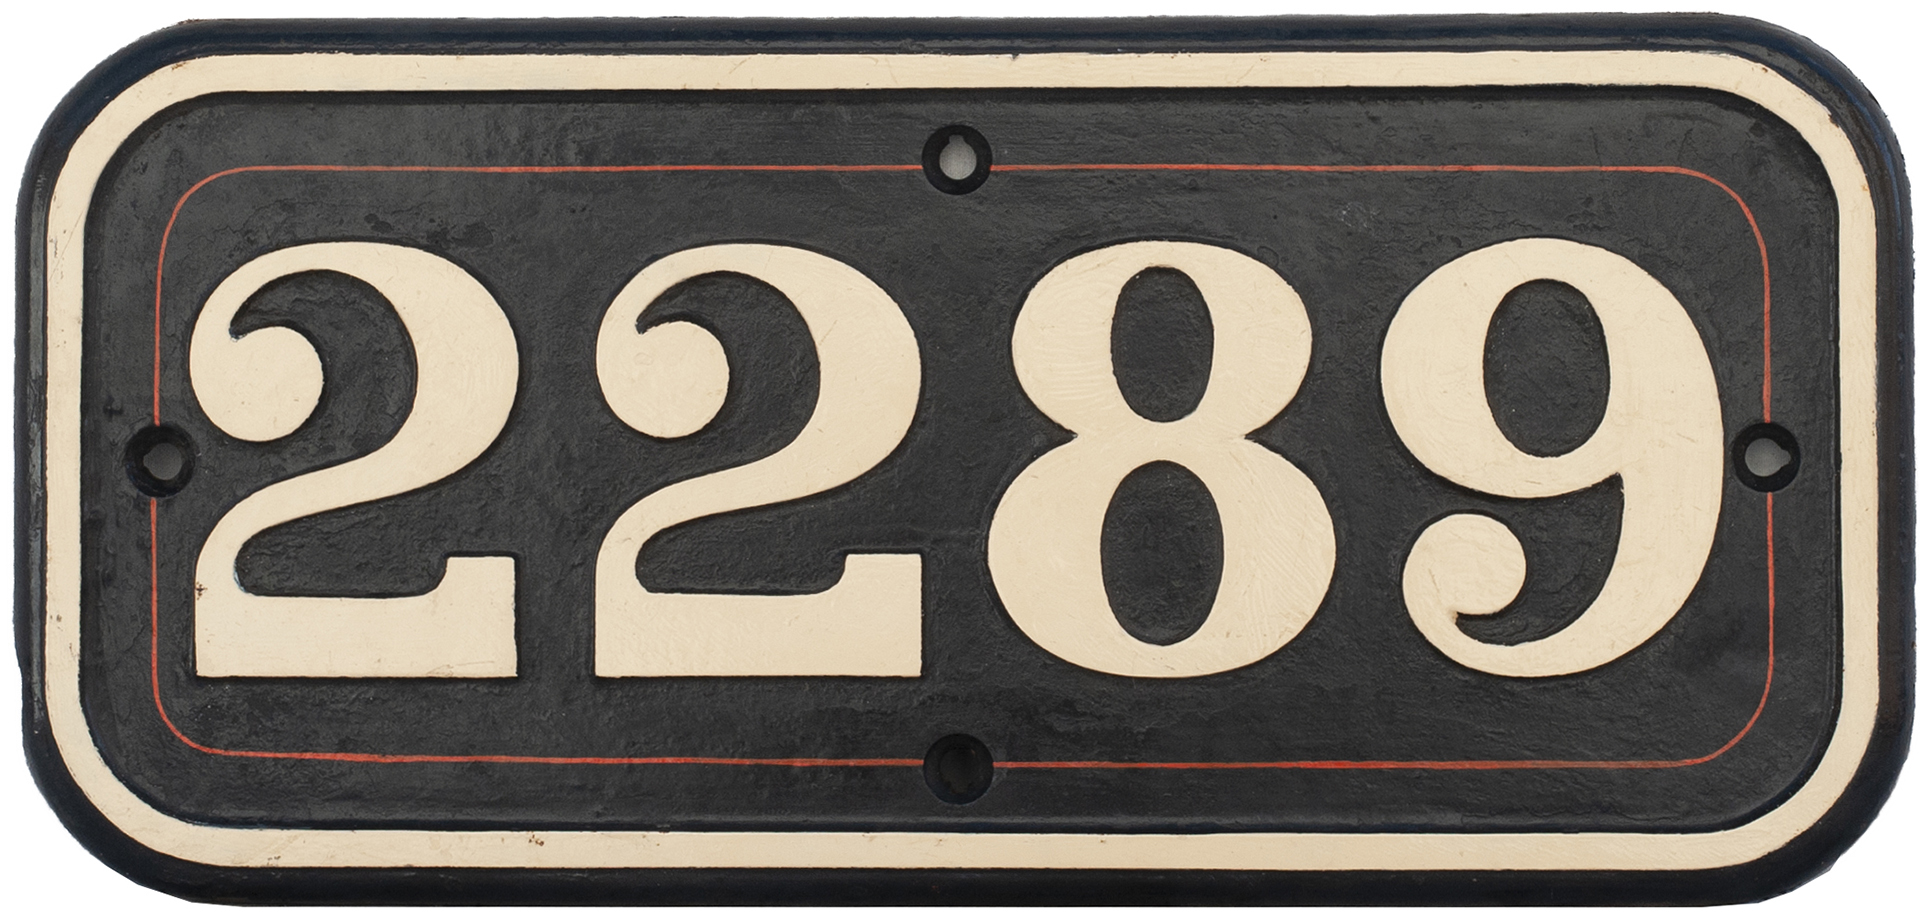 GWR Cast Iron Cabside Numberplate 2289 Ex Collett